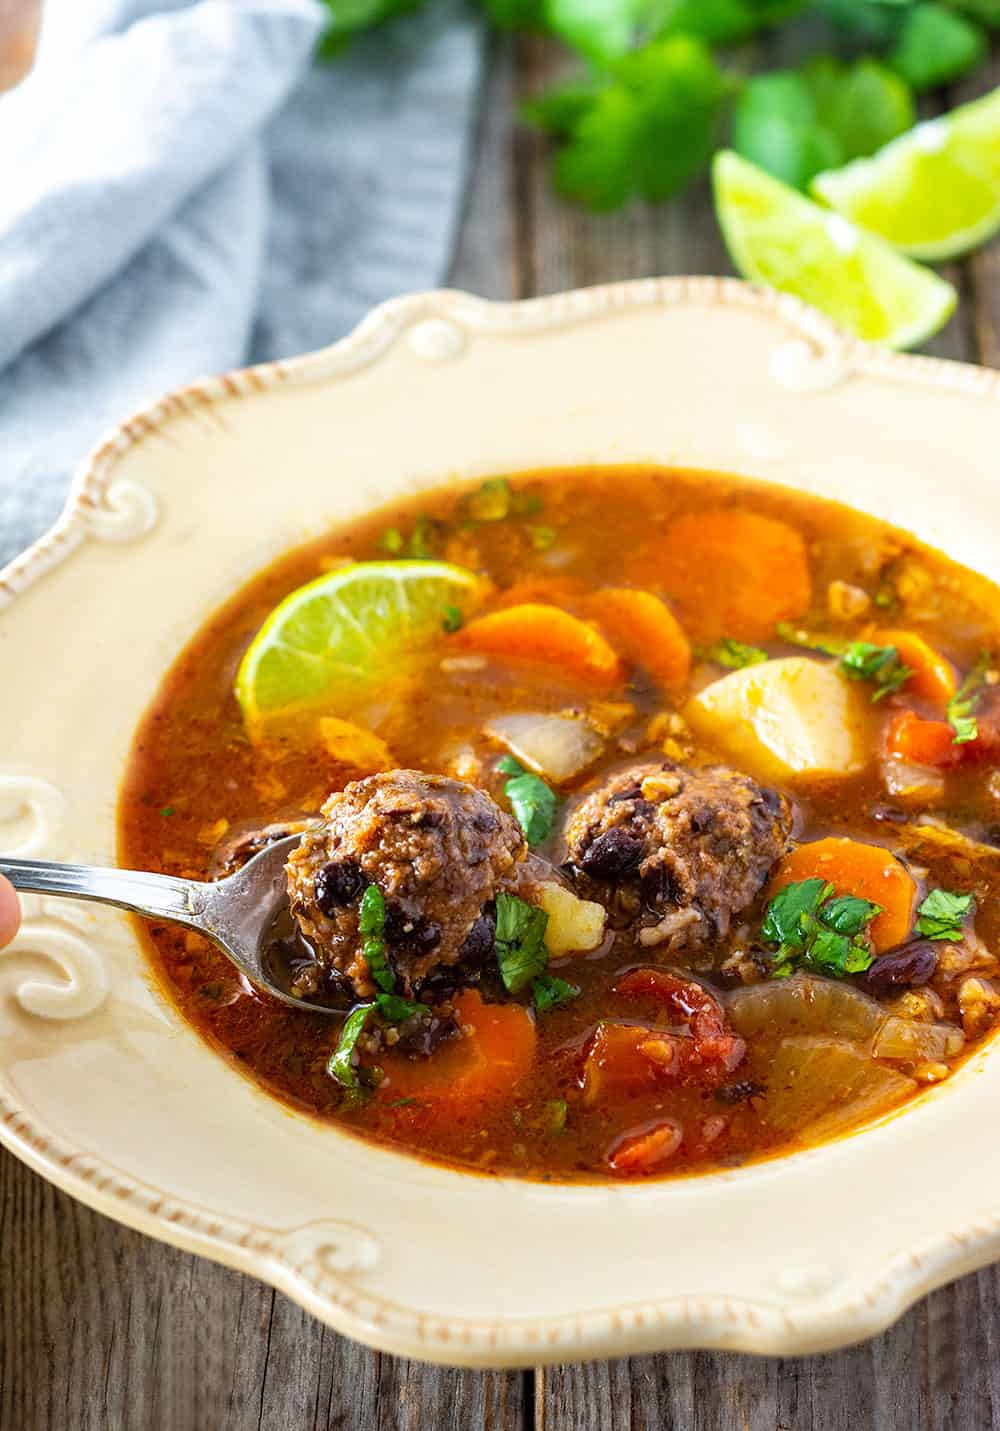 Easy Mexican Meatball soup made in a pressure cooker